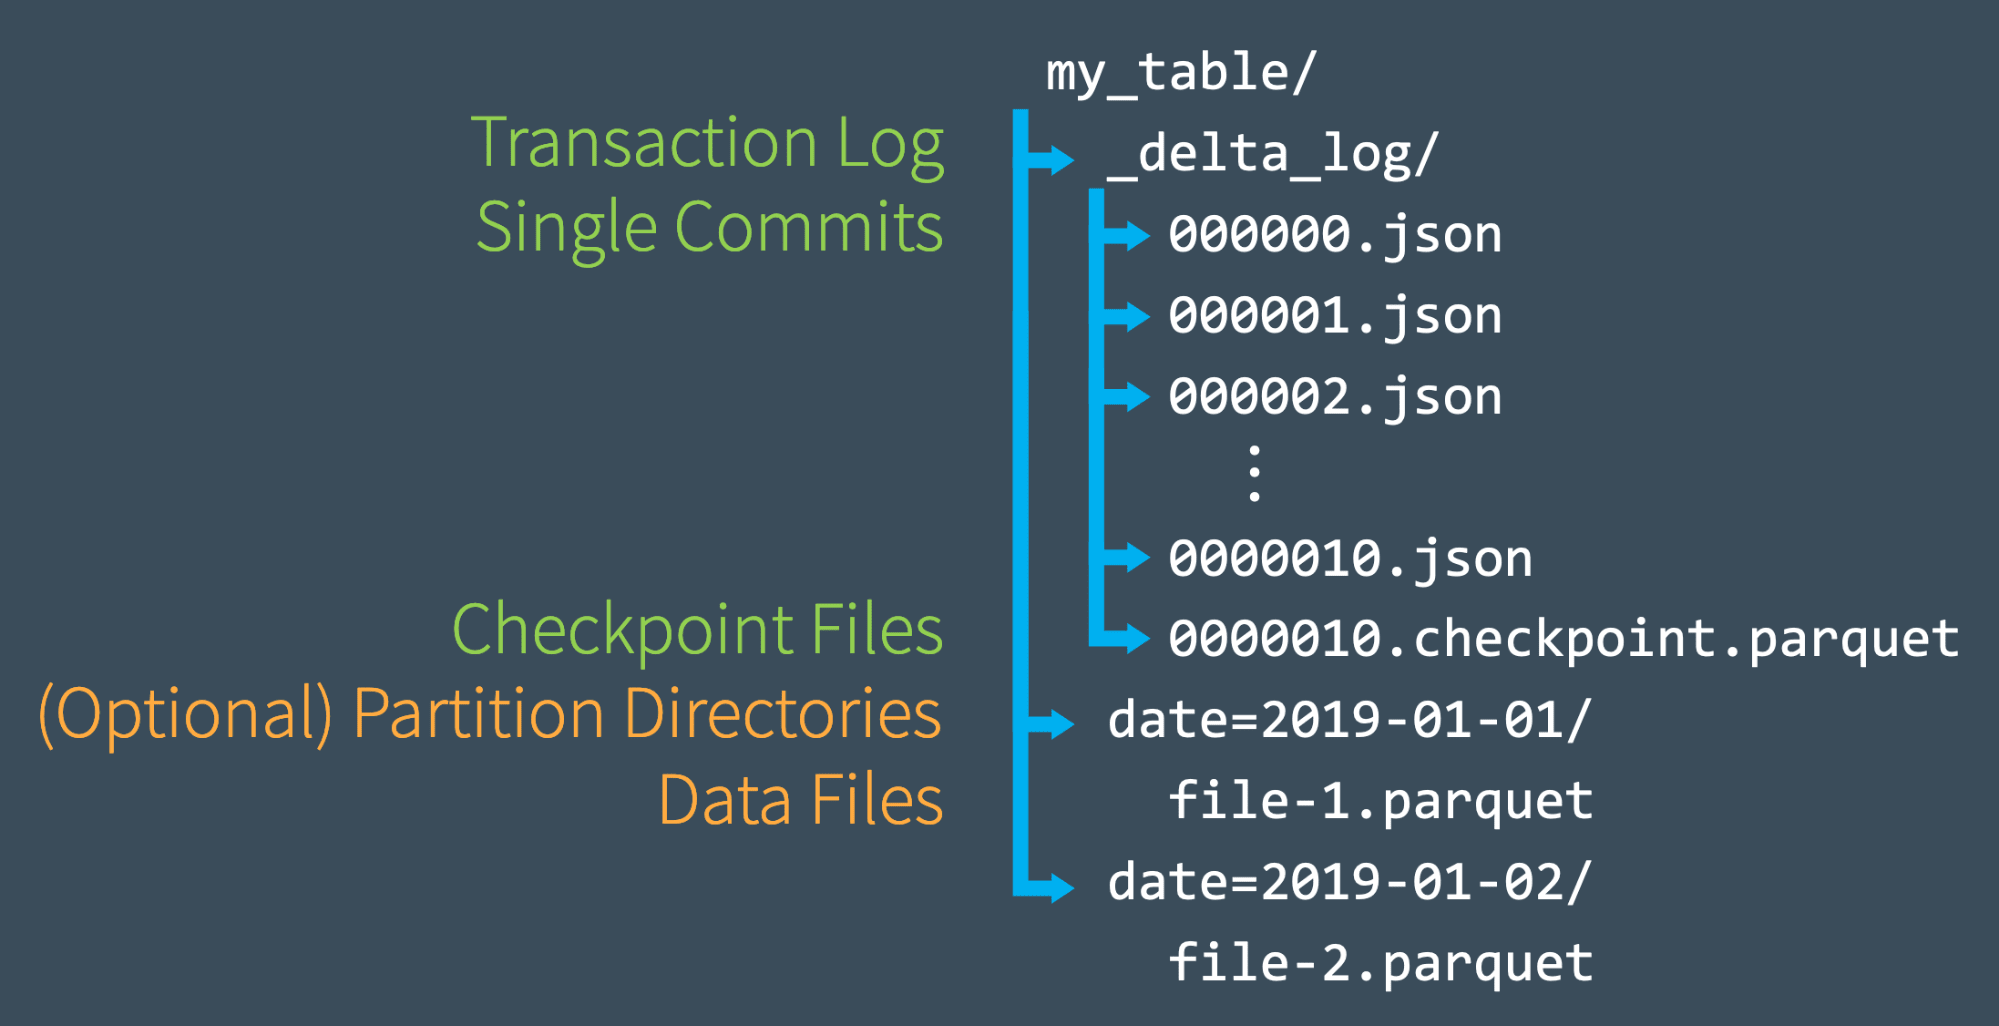 Diagram illustrating the Delta Lake Transaction Log file structure, including partition directories.